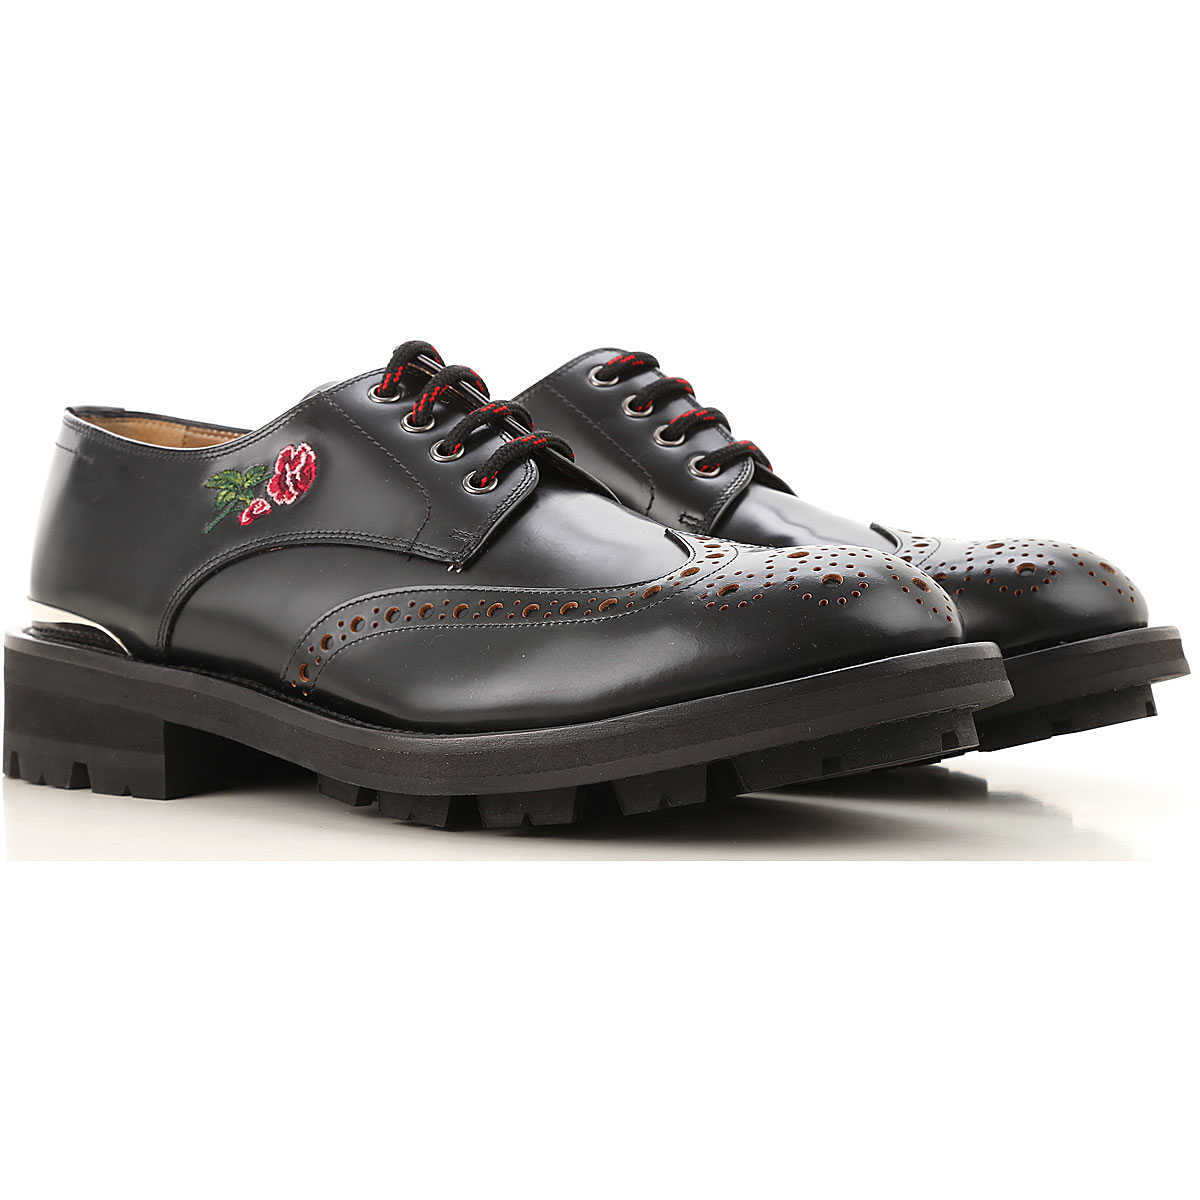 Alexander McQueen Lace Up Shoes for Men Oxfords Derbies and Brogues - GOOFASH